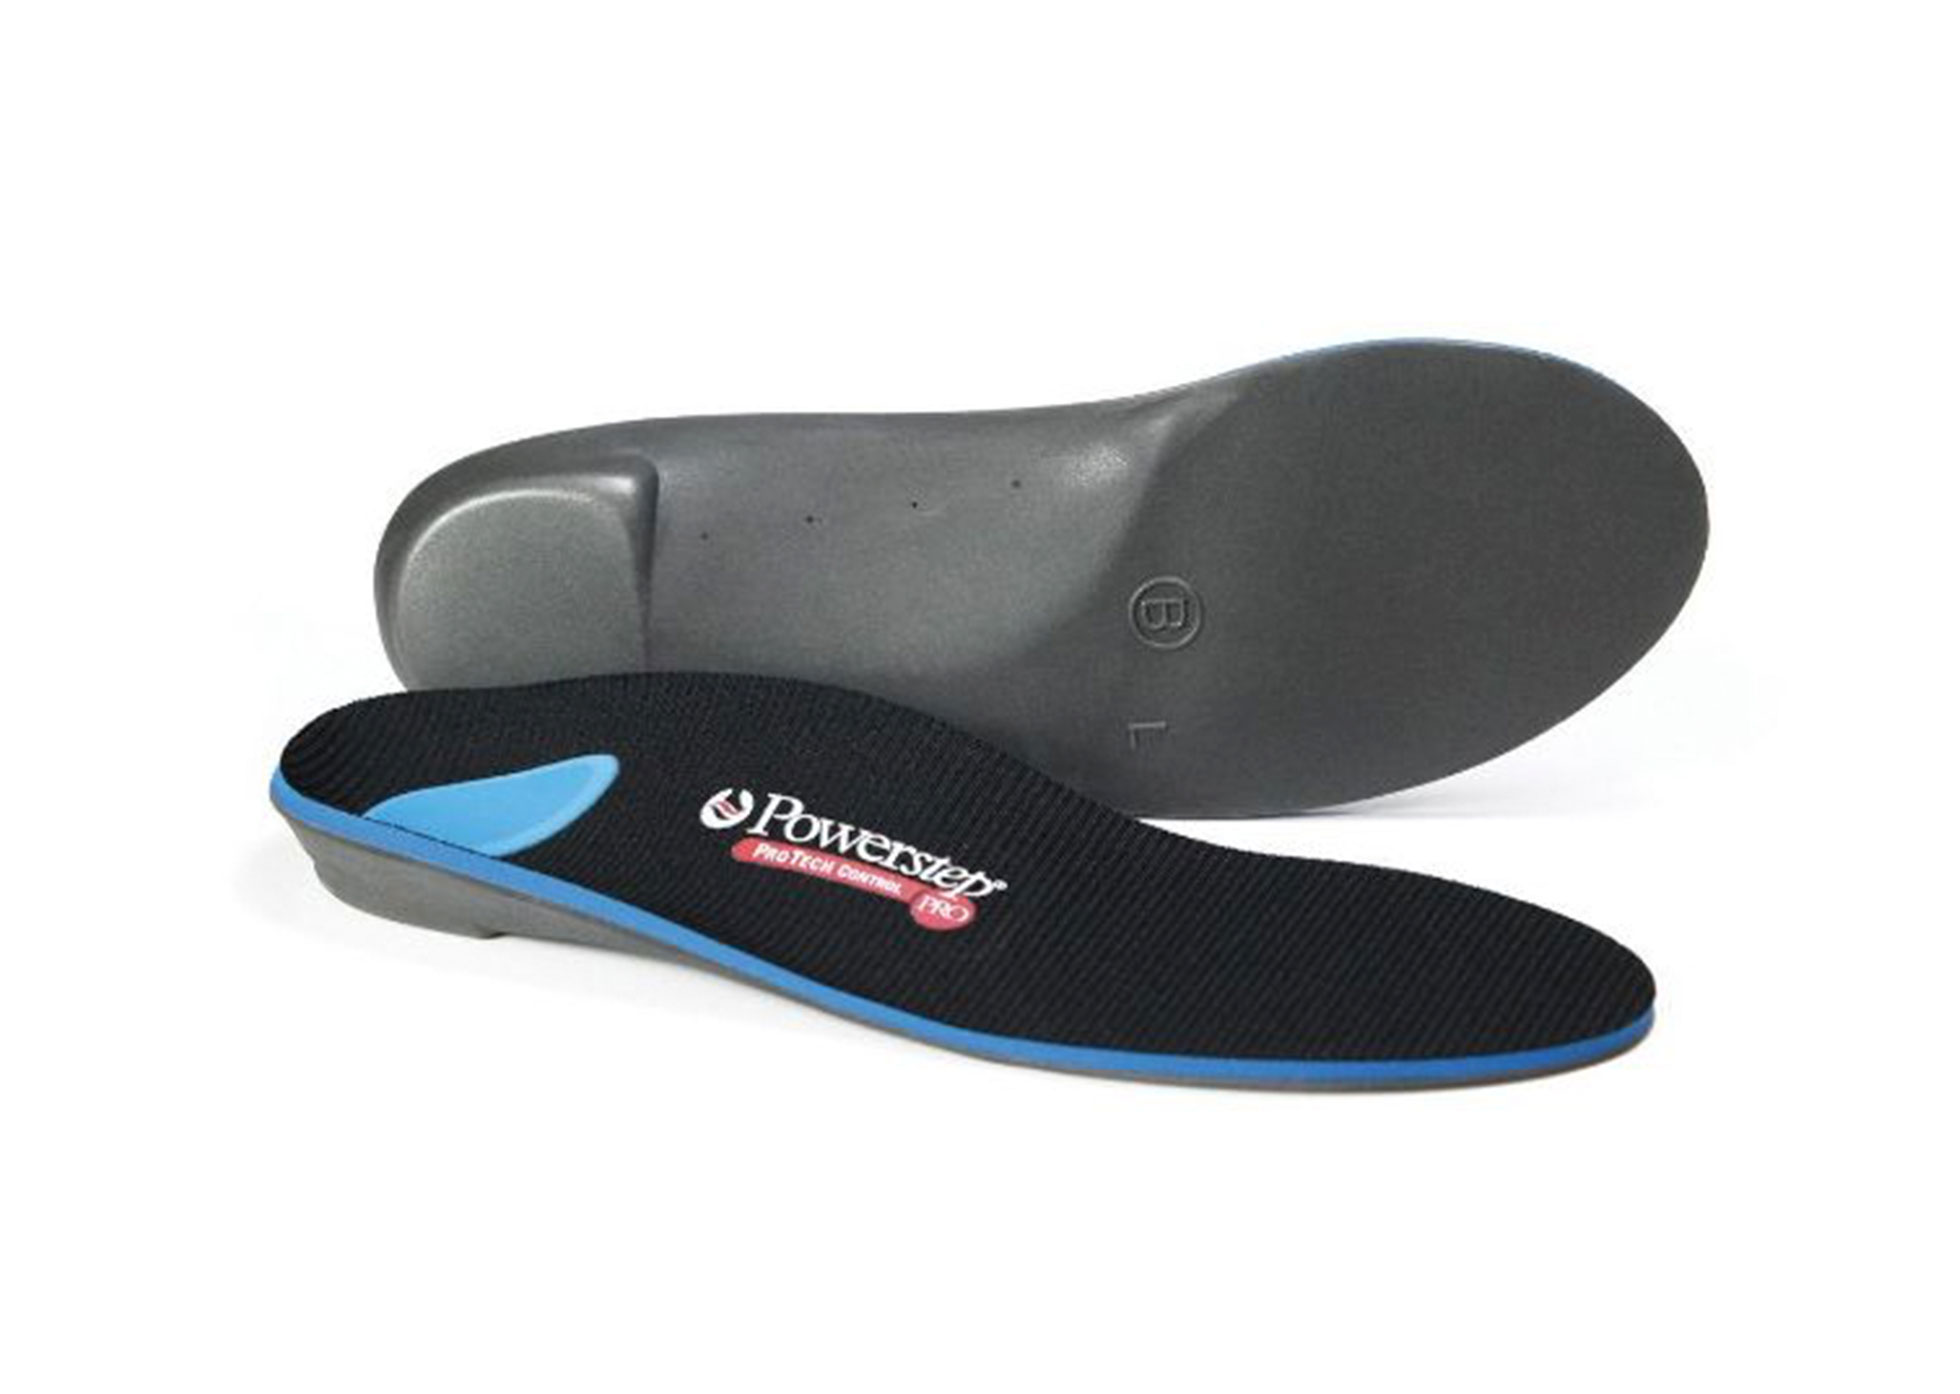 Carnation Footcare - Powerstep Pro - Code G - Mens - 9 - 9.5 / Womens - 10 - 11.5 - Per Pair Insoles